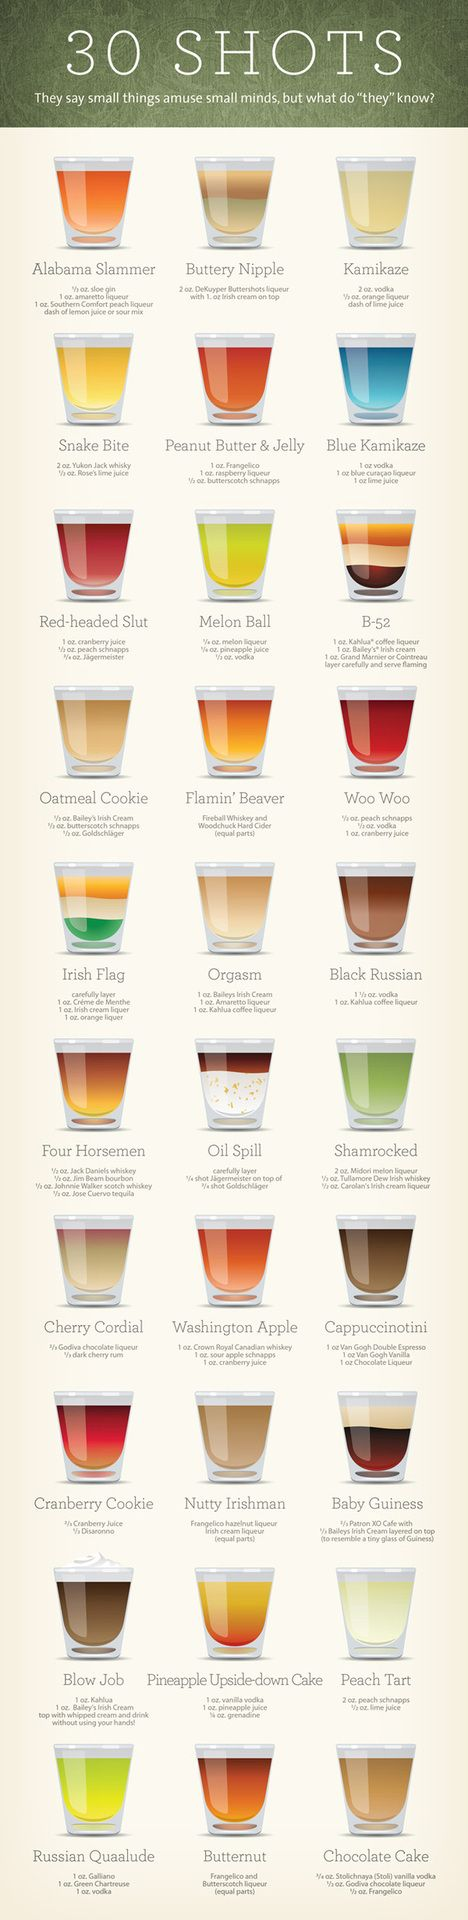 30 Easy Shots Recipes{click link for extra large view} 30 ShotsIs it an info graphic, or a recipe list? Either way, this poster shows what's inside 30 of the most popular and iconic shooters. How many have you tried?